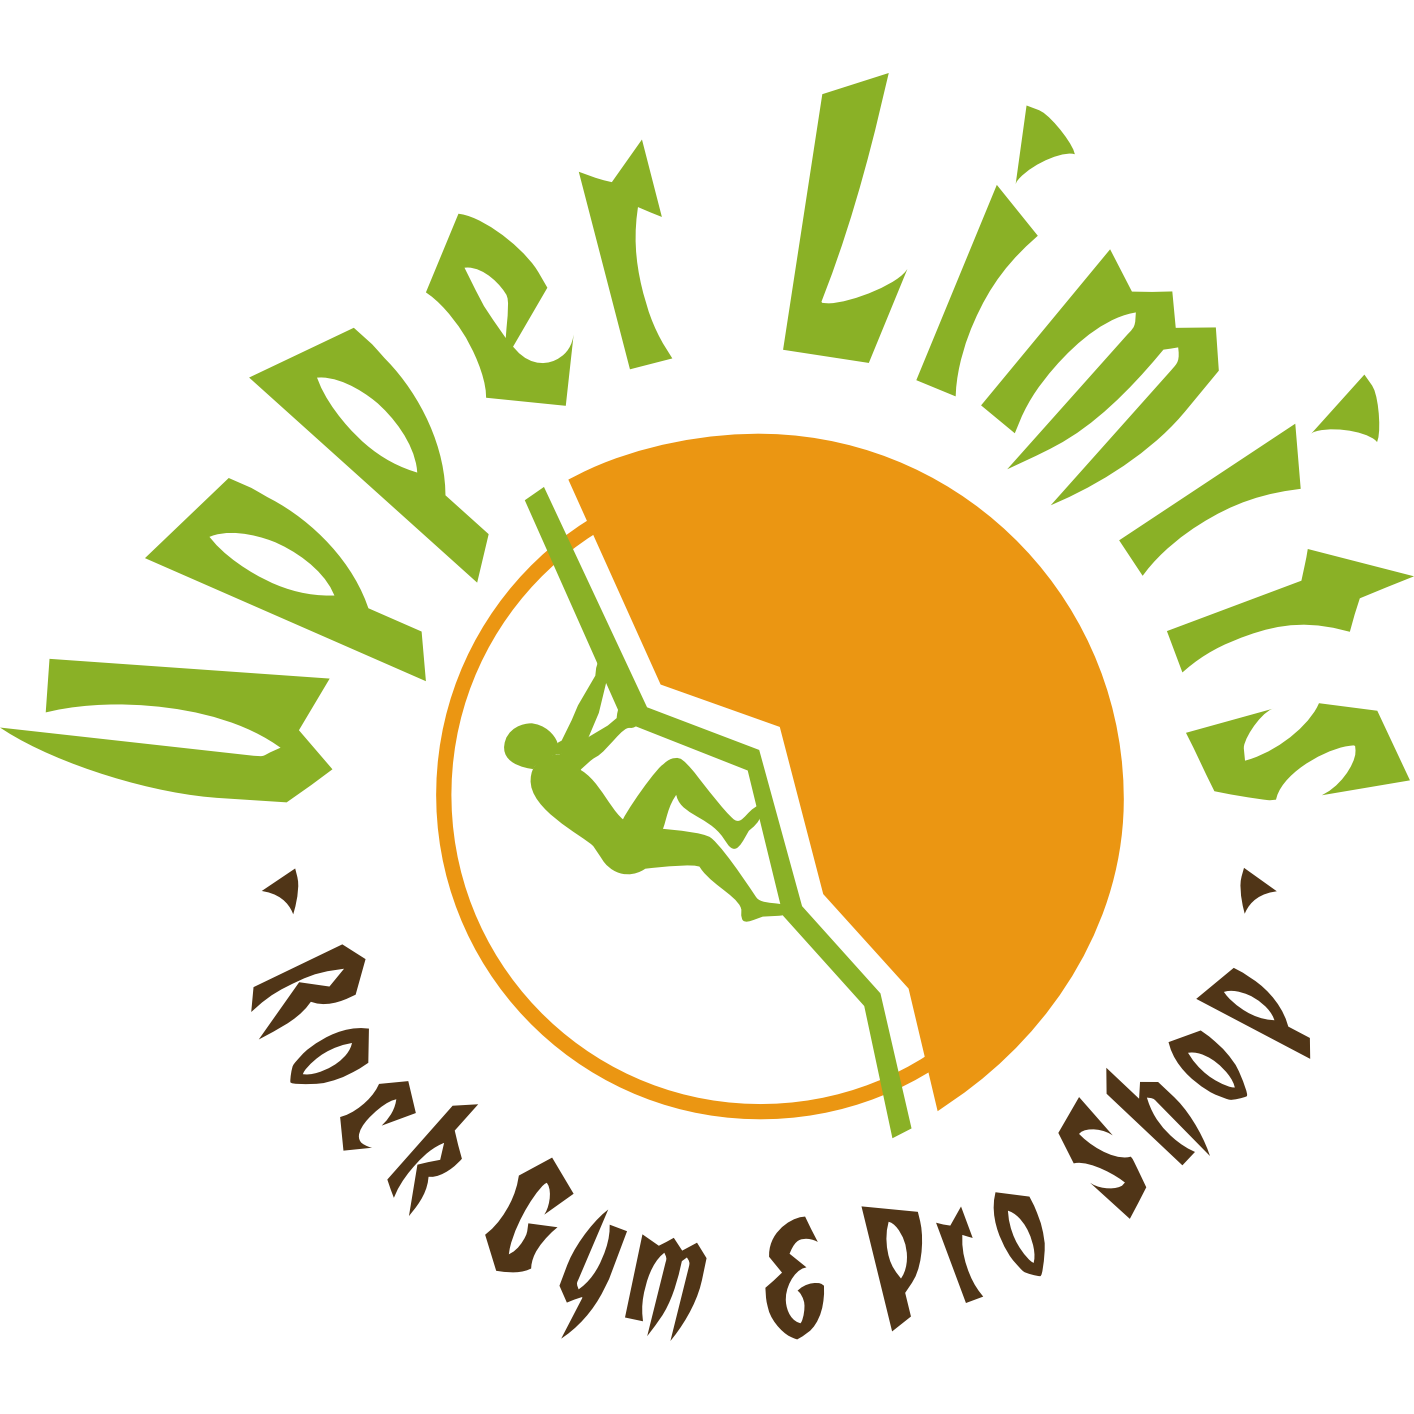 Upper Limits Rock Climbing Gym - Maryland Heights image 15